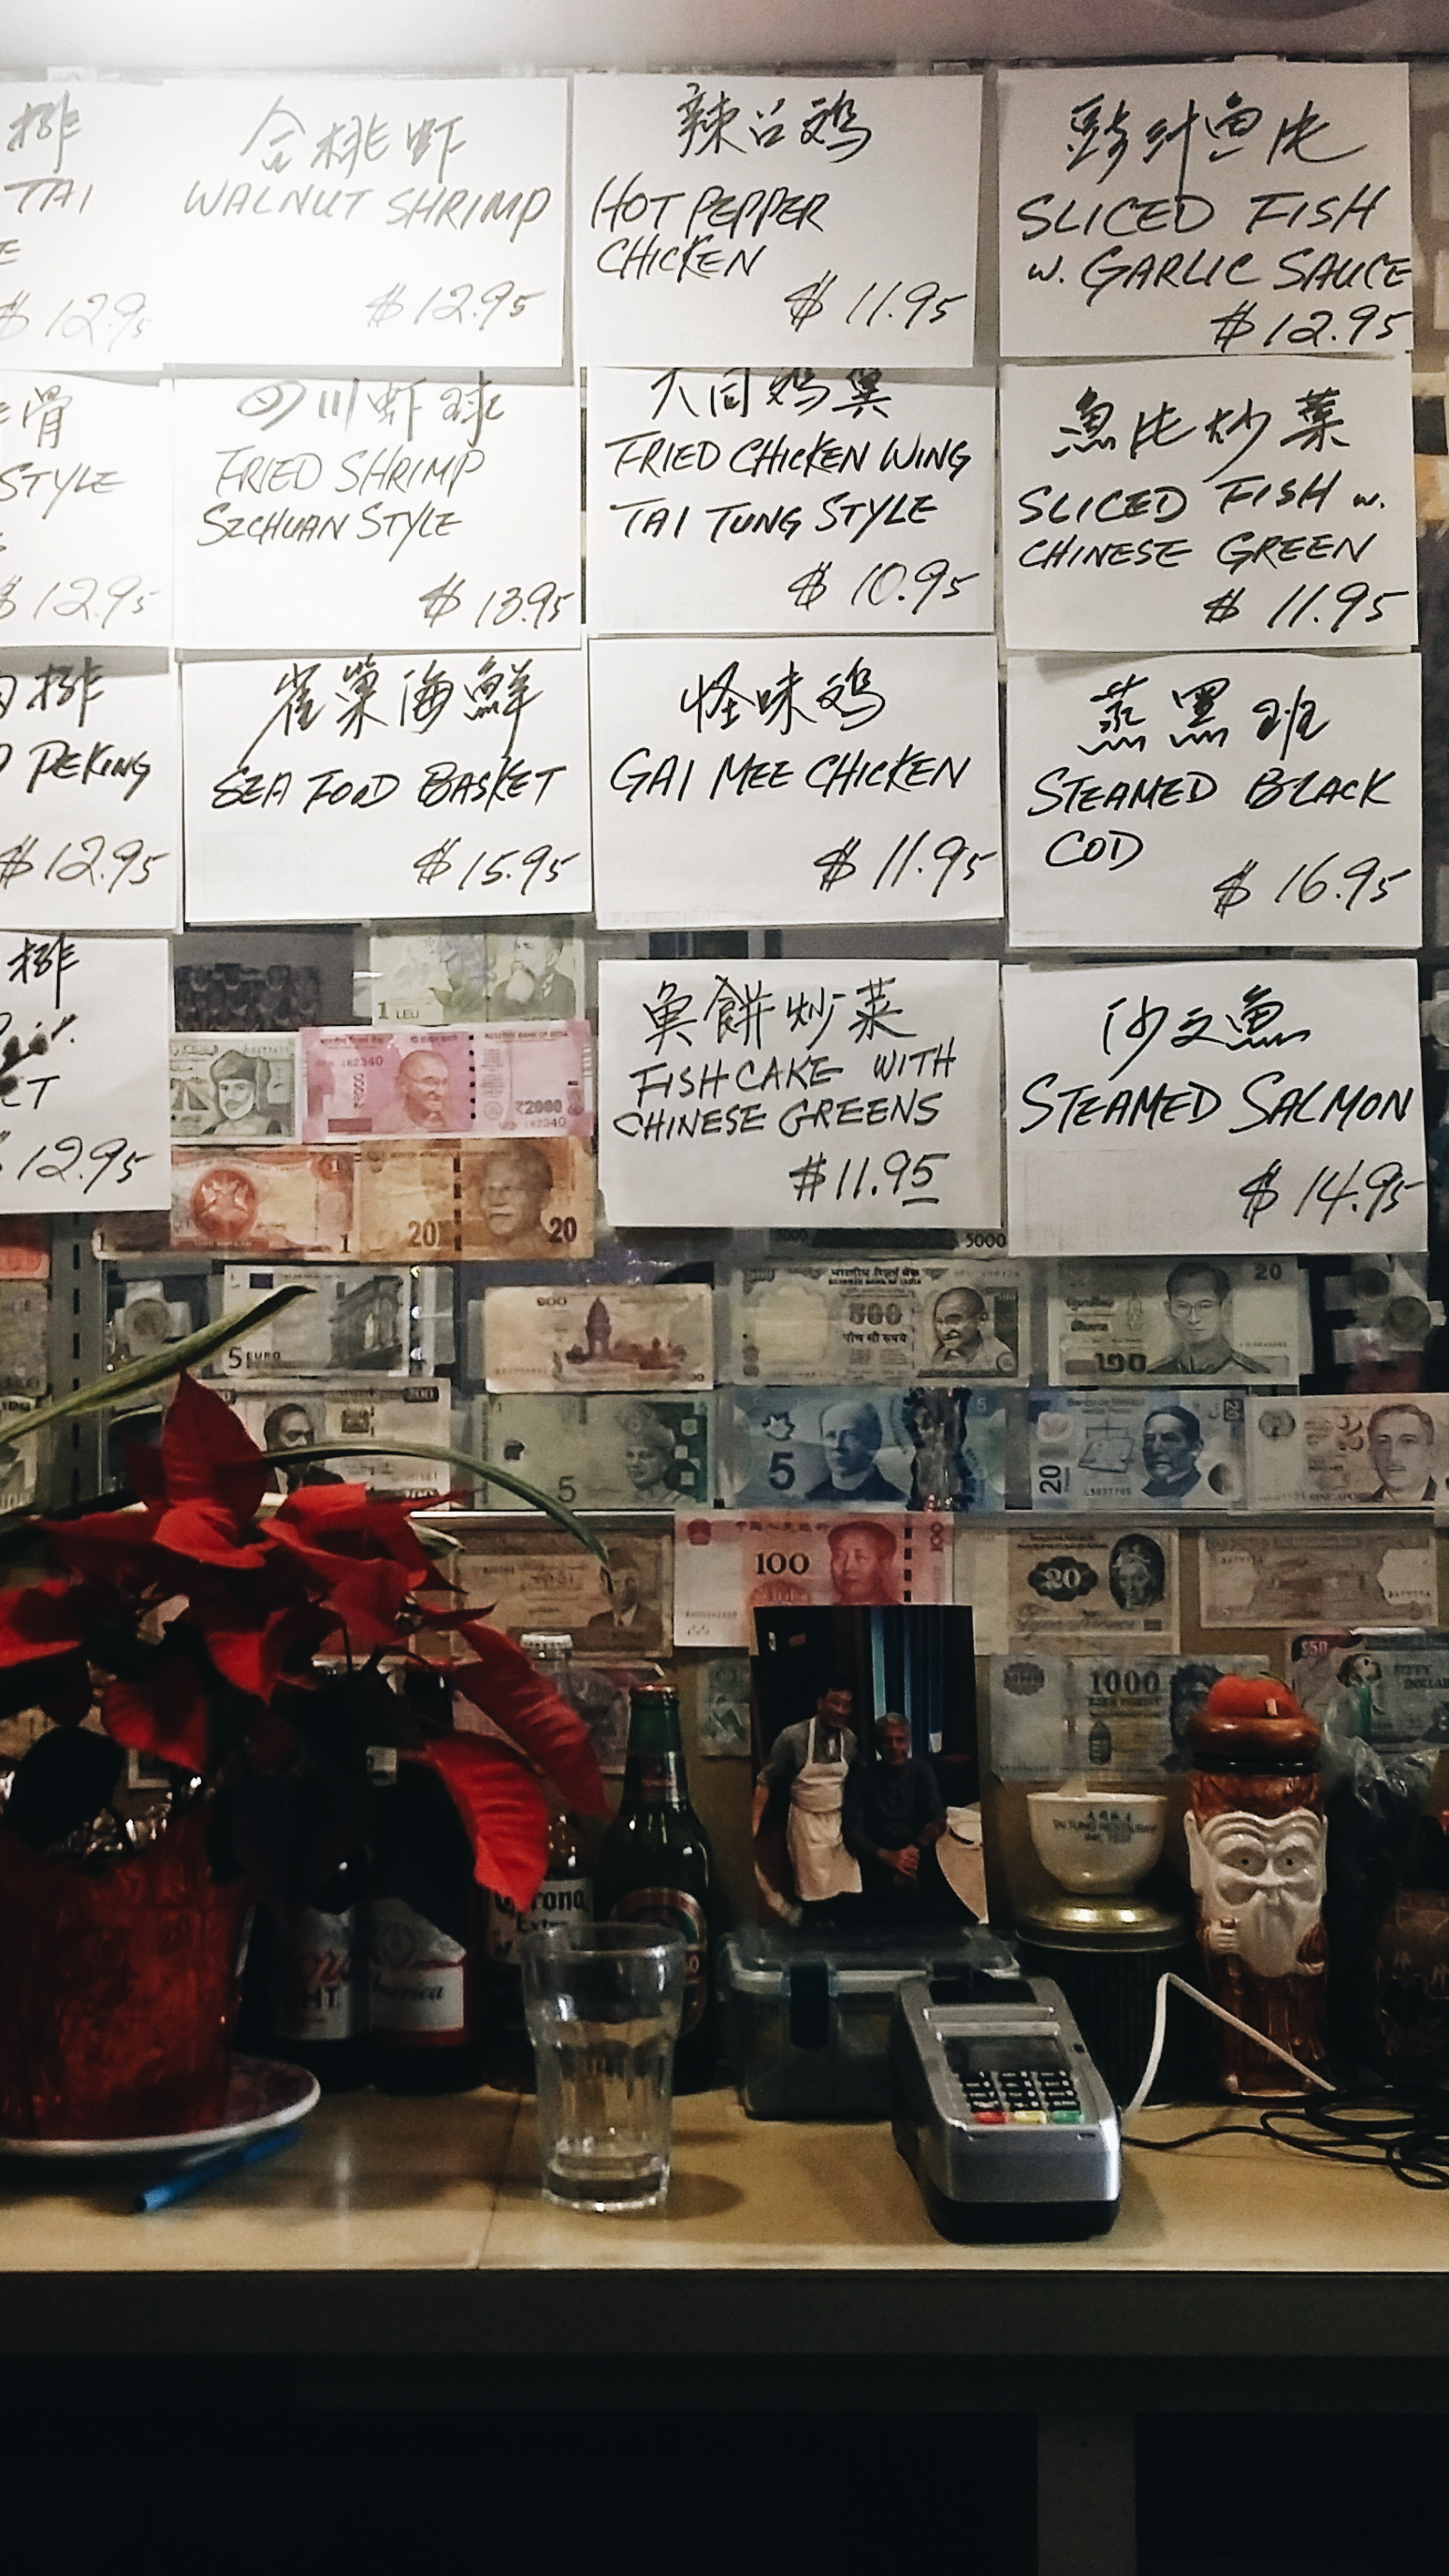 Tai Tung hasn't changed much since it opened in 1935. From the bar, you can see handwritten menu items taped to the mirror.